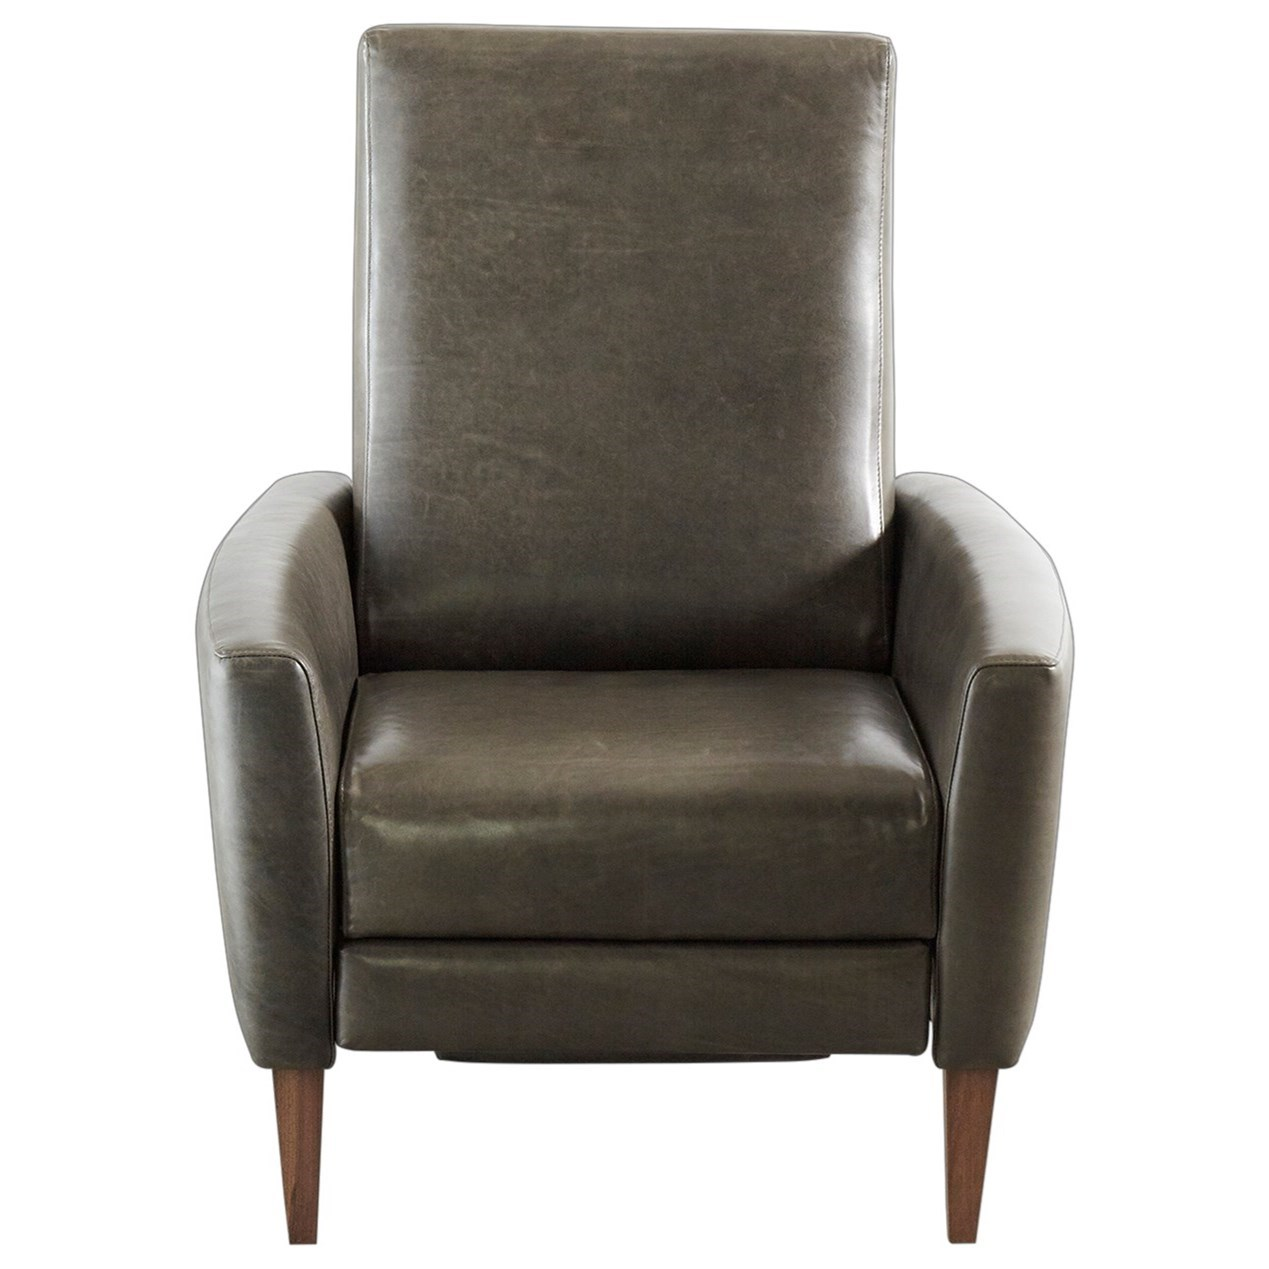 Vida High Leg Recliner by American Leather at Williams & Kay